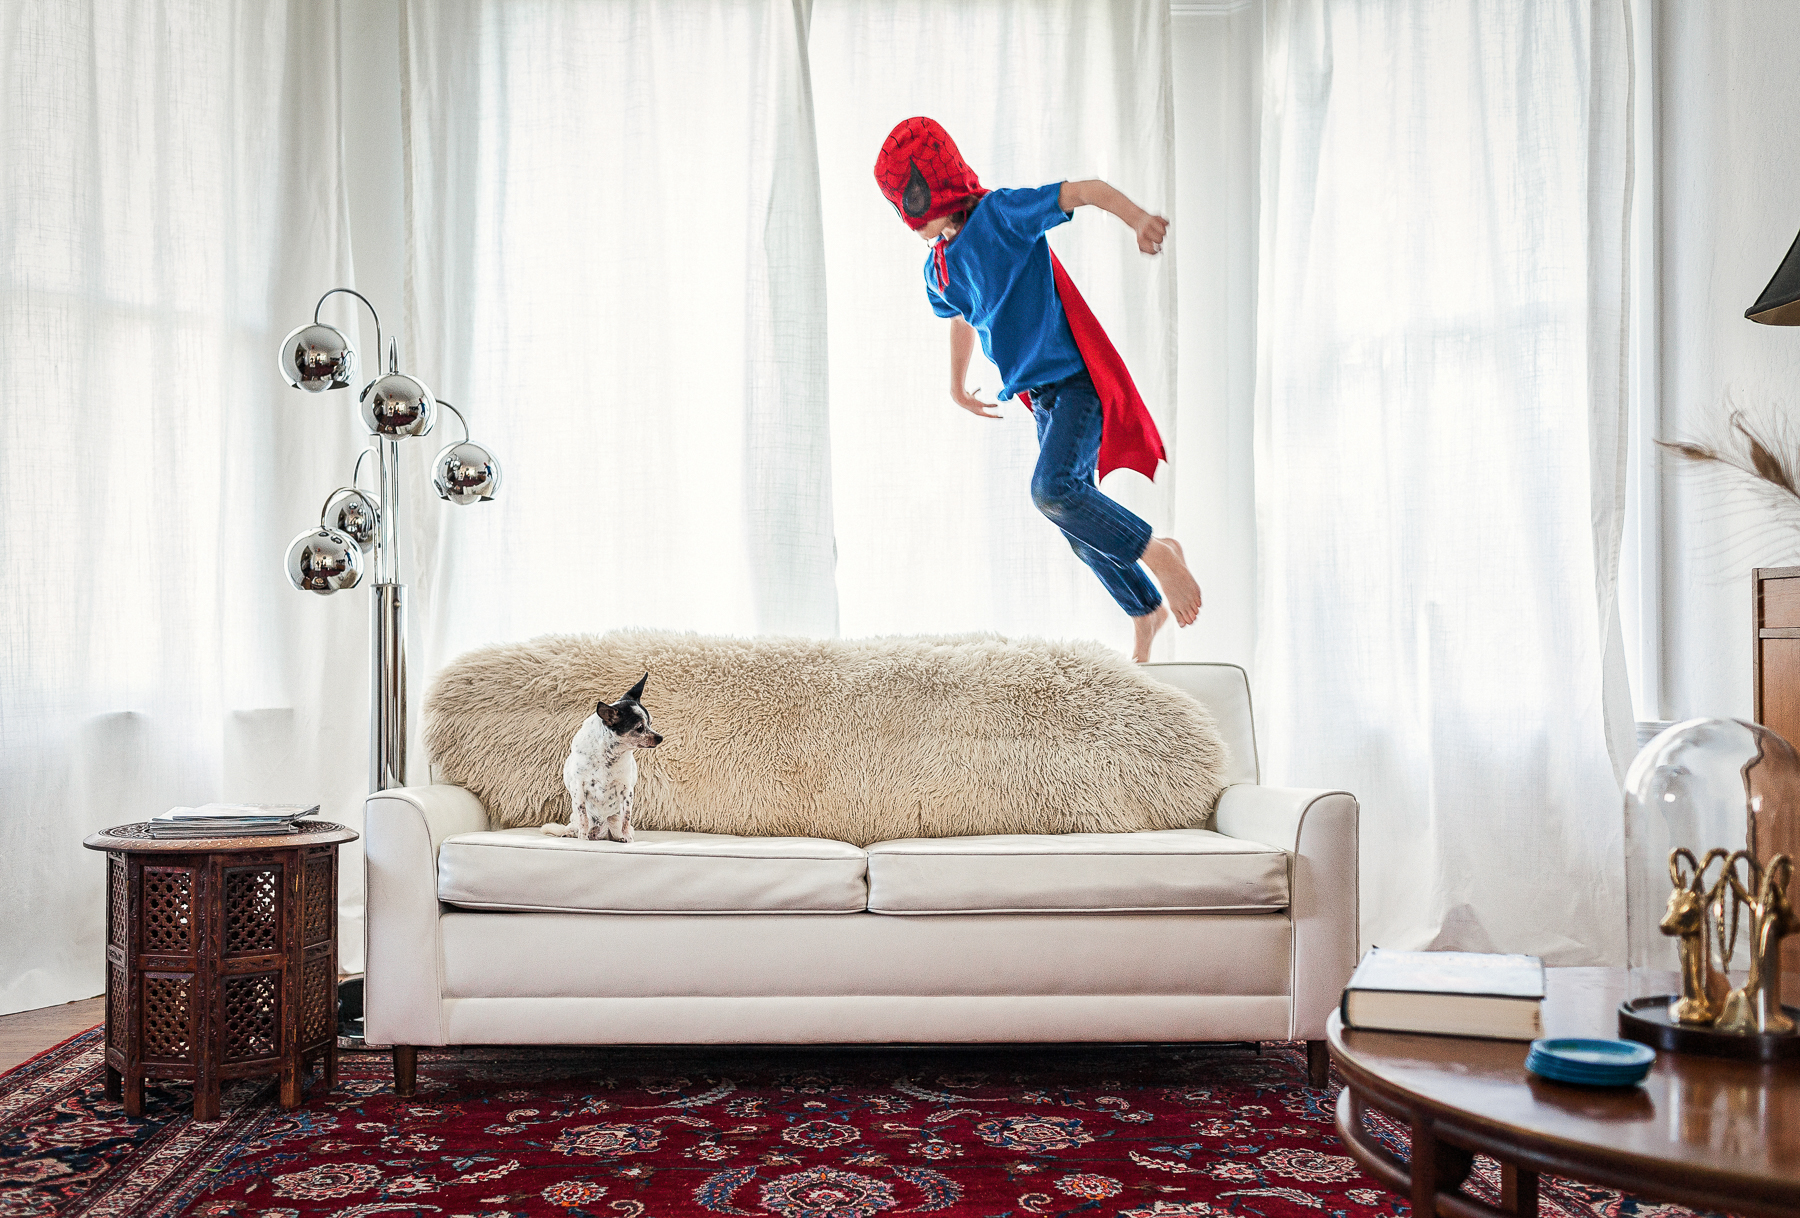 Boy Jumping onto a Couch with a Dog